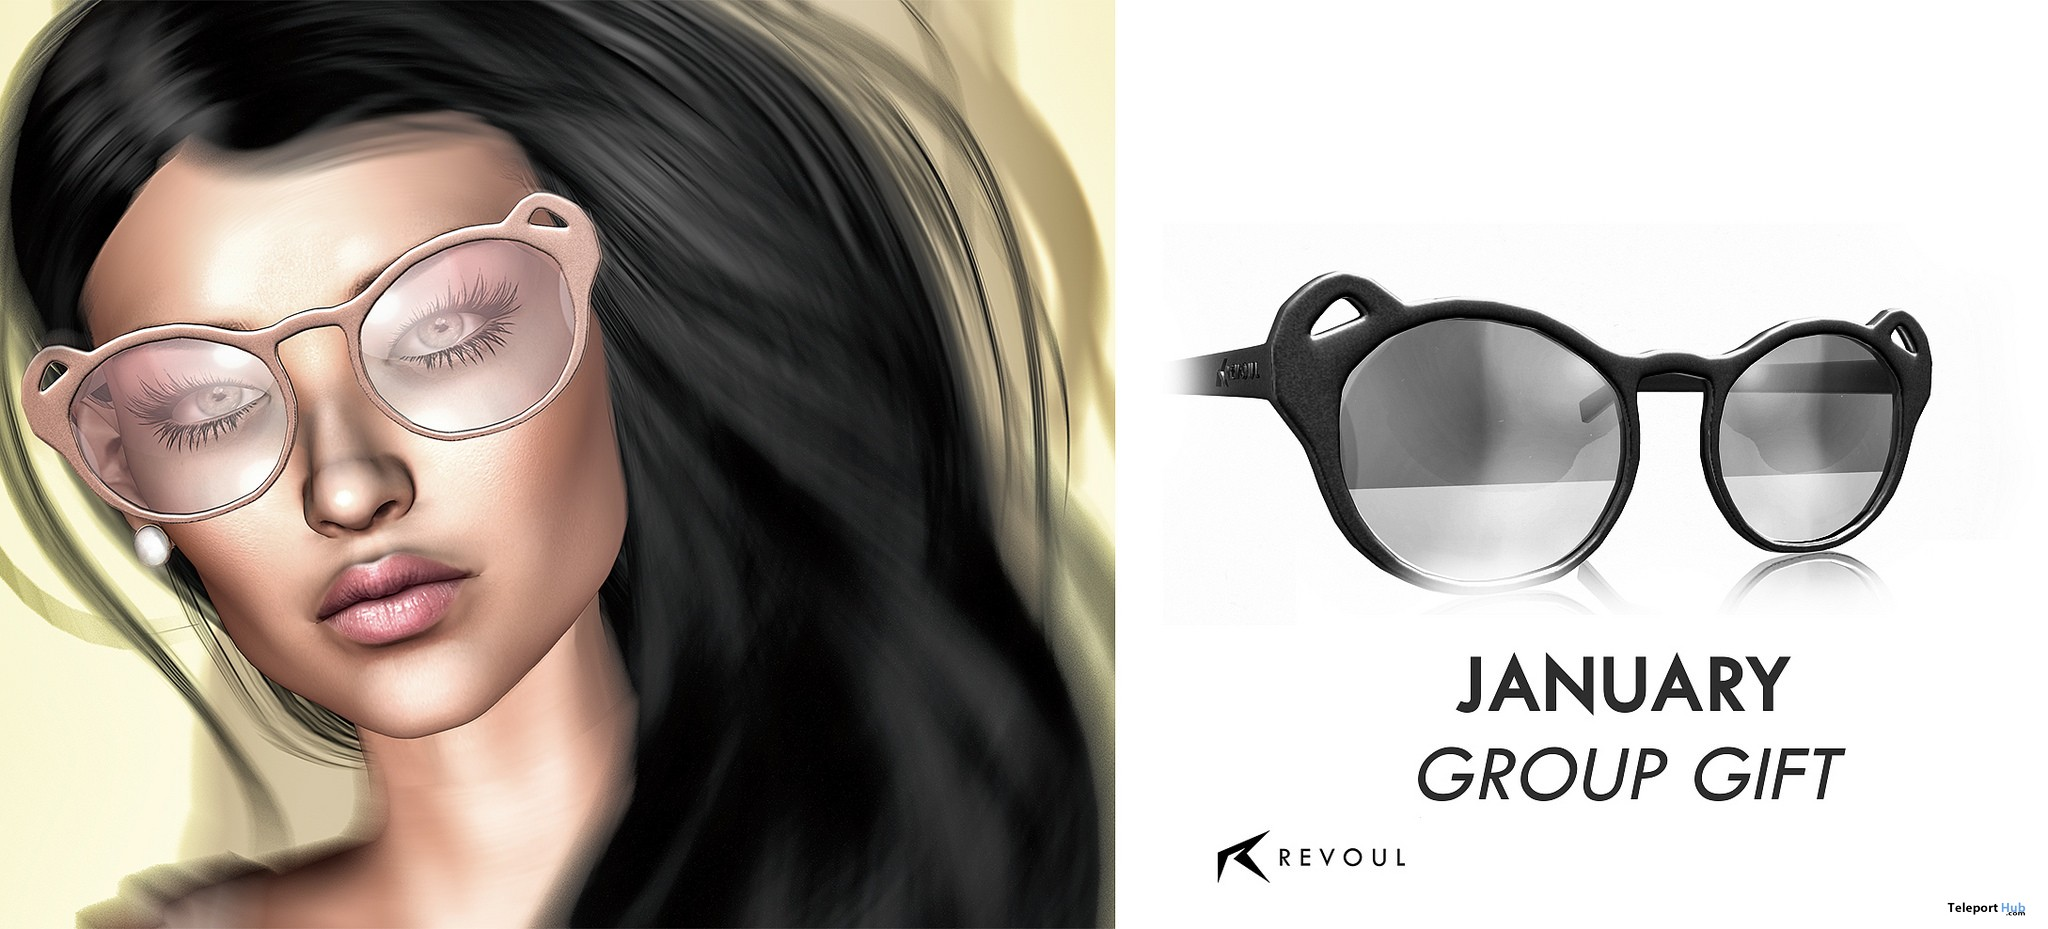 Rowan Shades Unisex January 2017 Group Gift by REVOUL - Teleport Hub - teleporthub.com